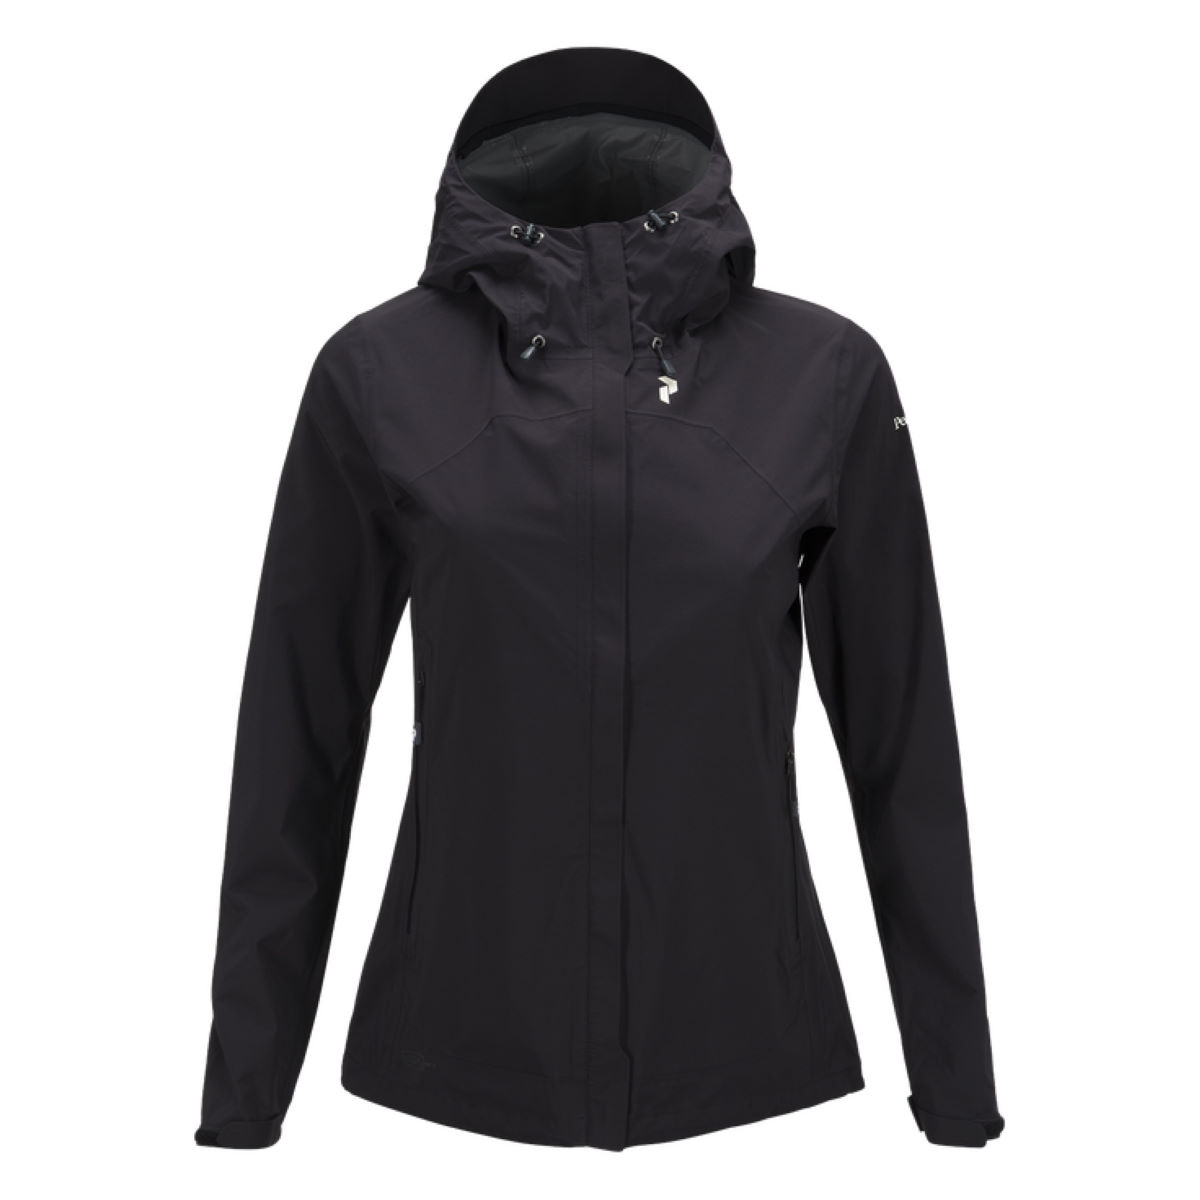 Peak Performance Women's Swift Jacket   Jackets